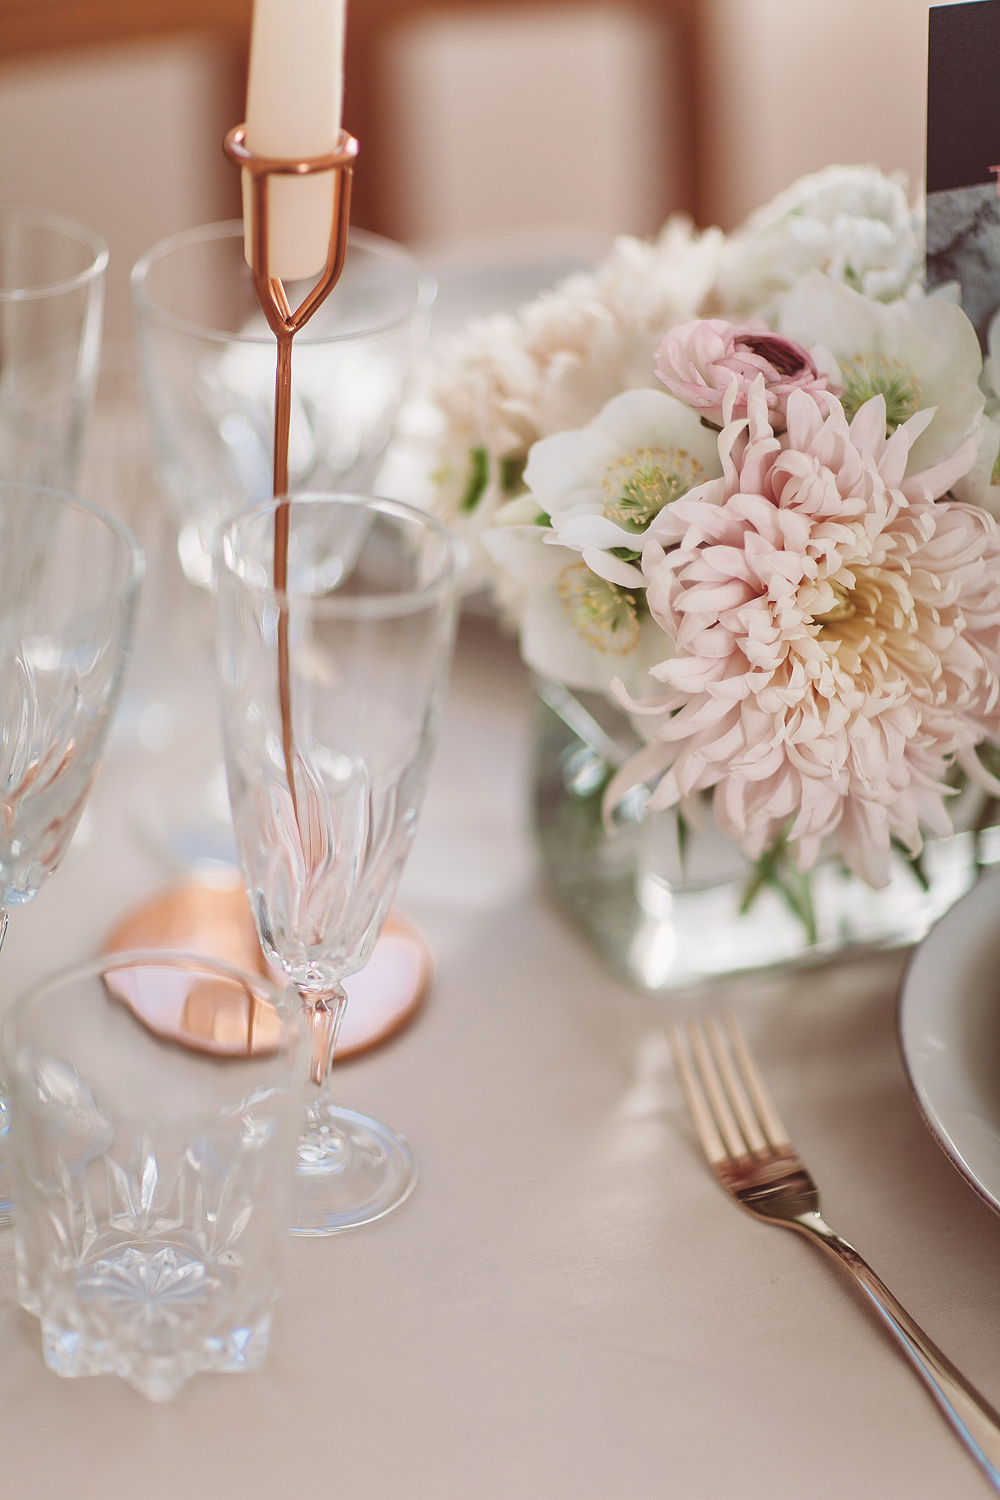 Marble, blush and modern wedding shoot